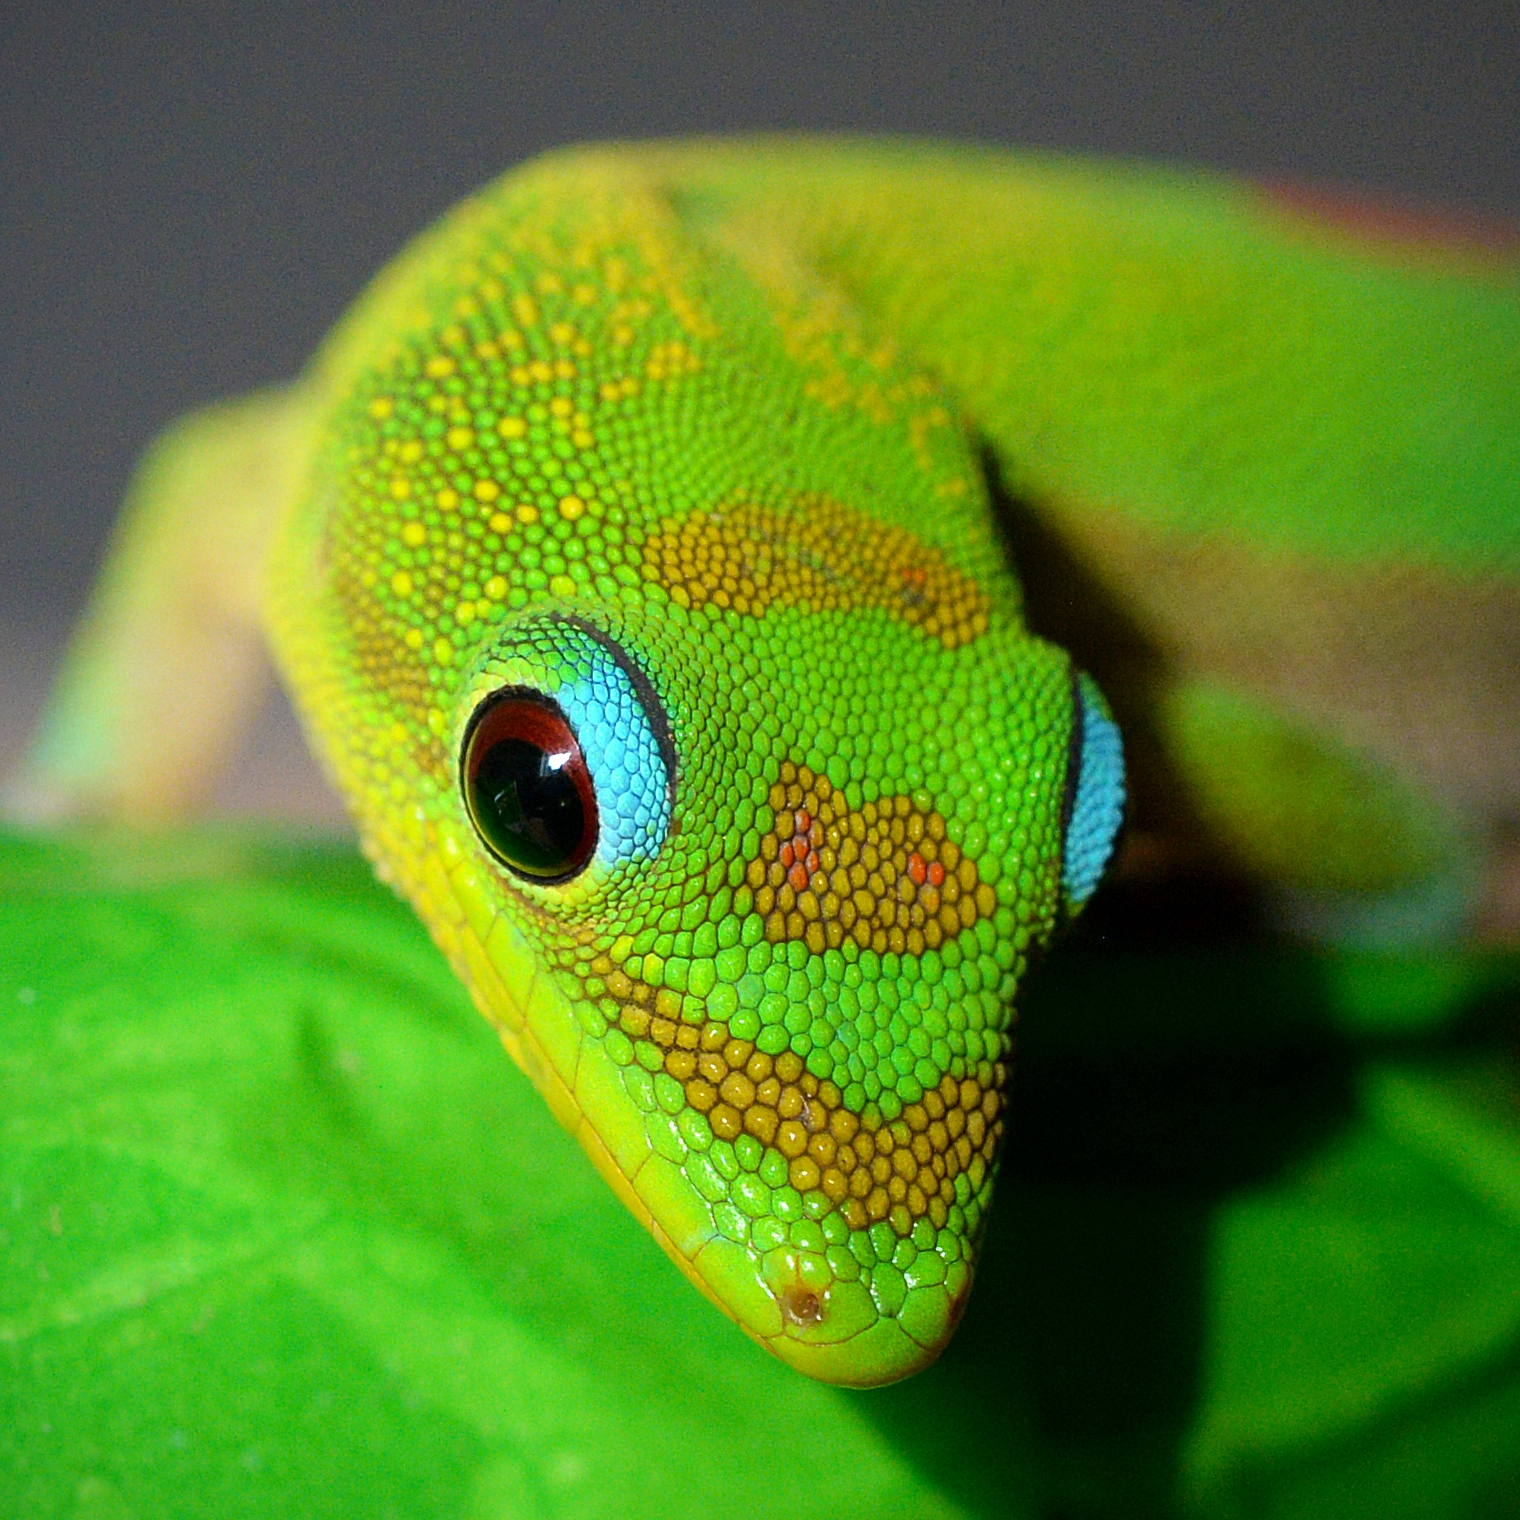 Mr. Gecko that is looking down